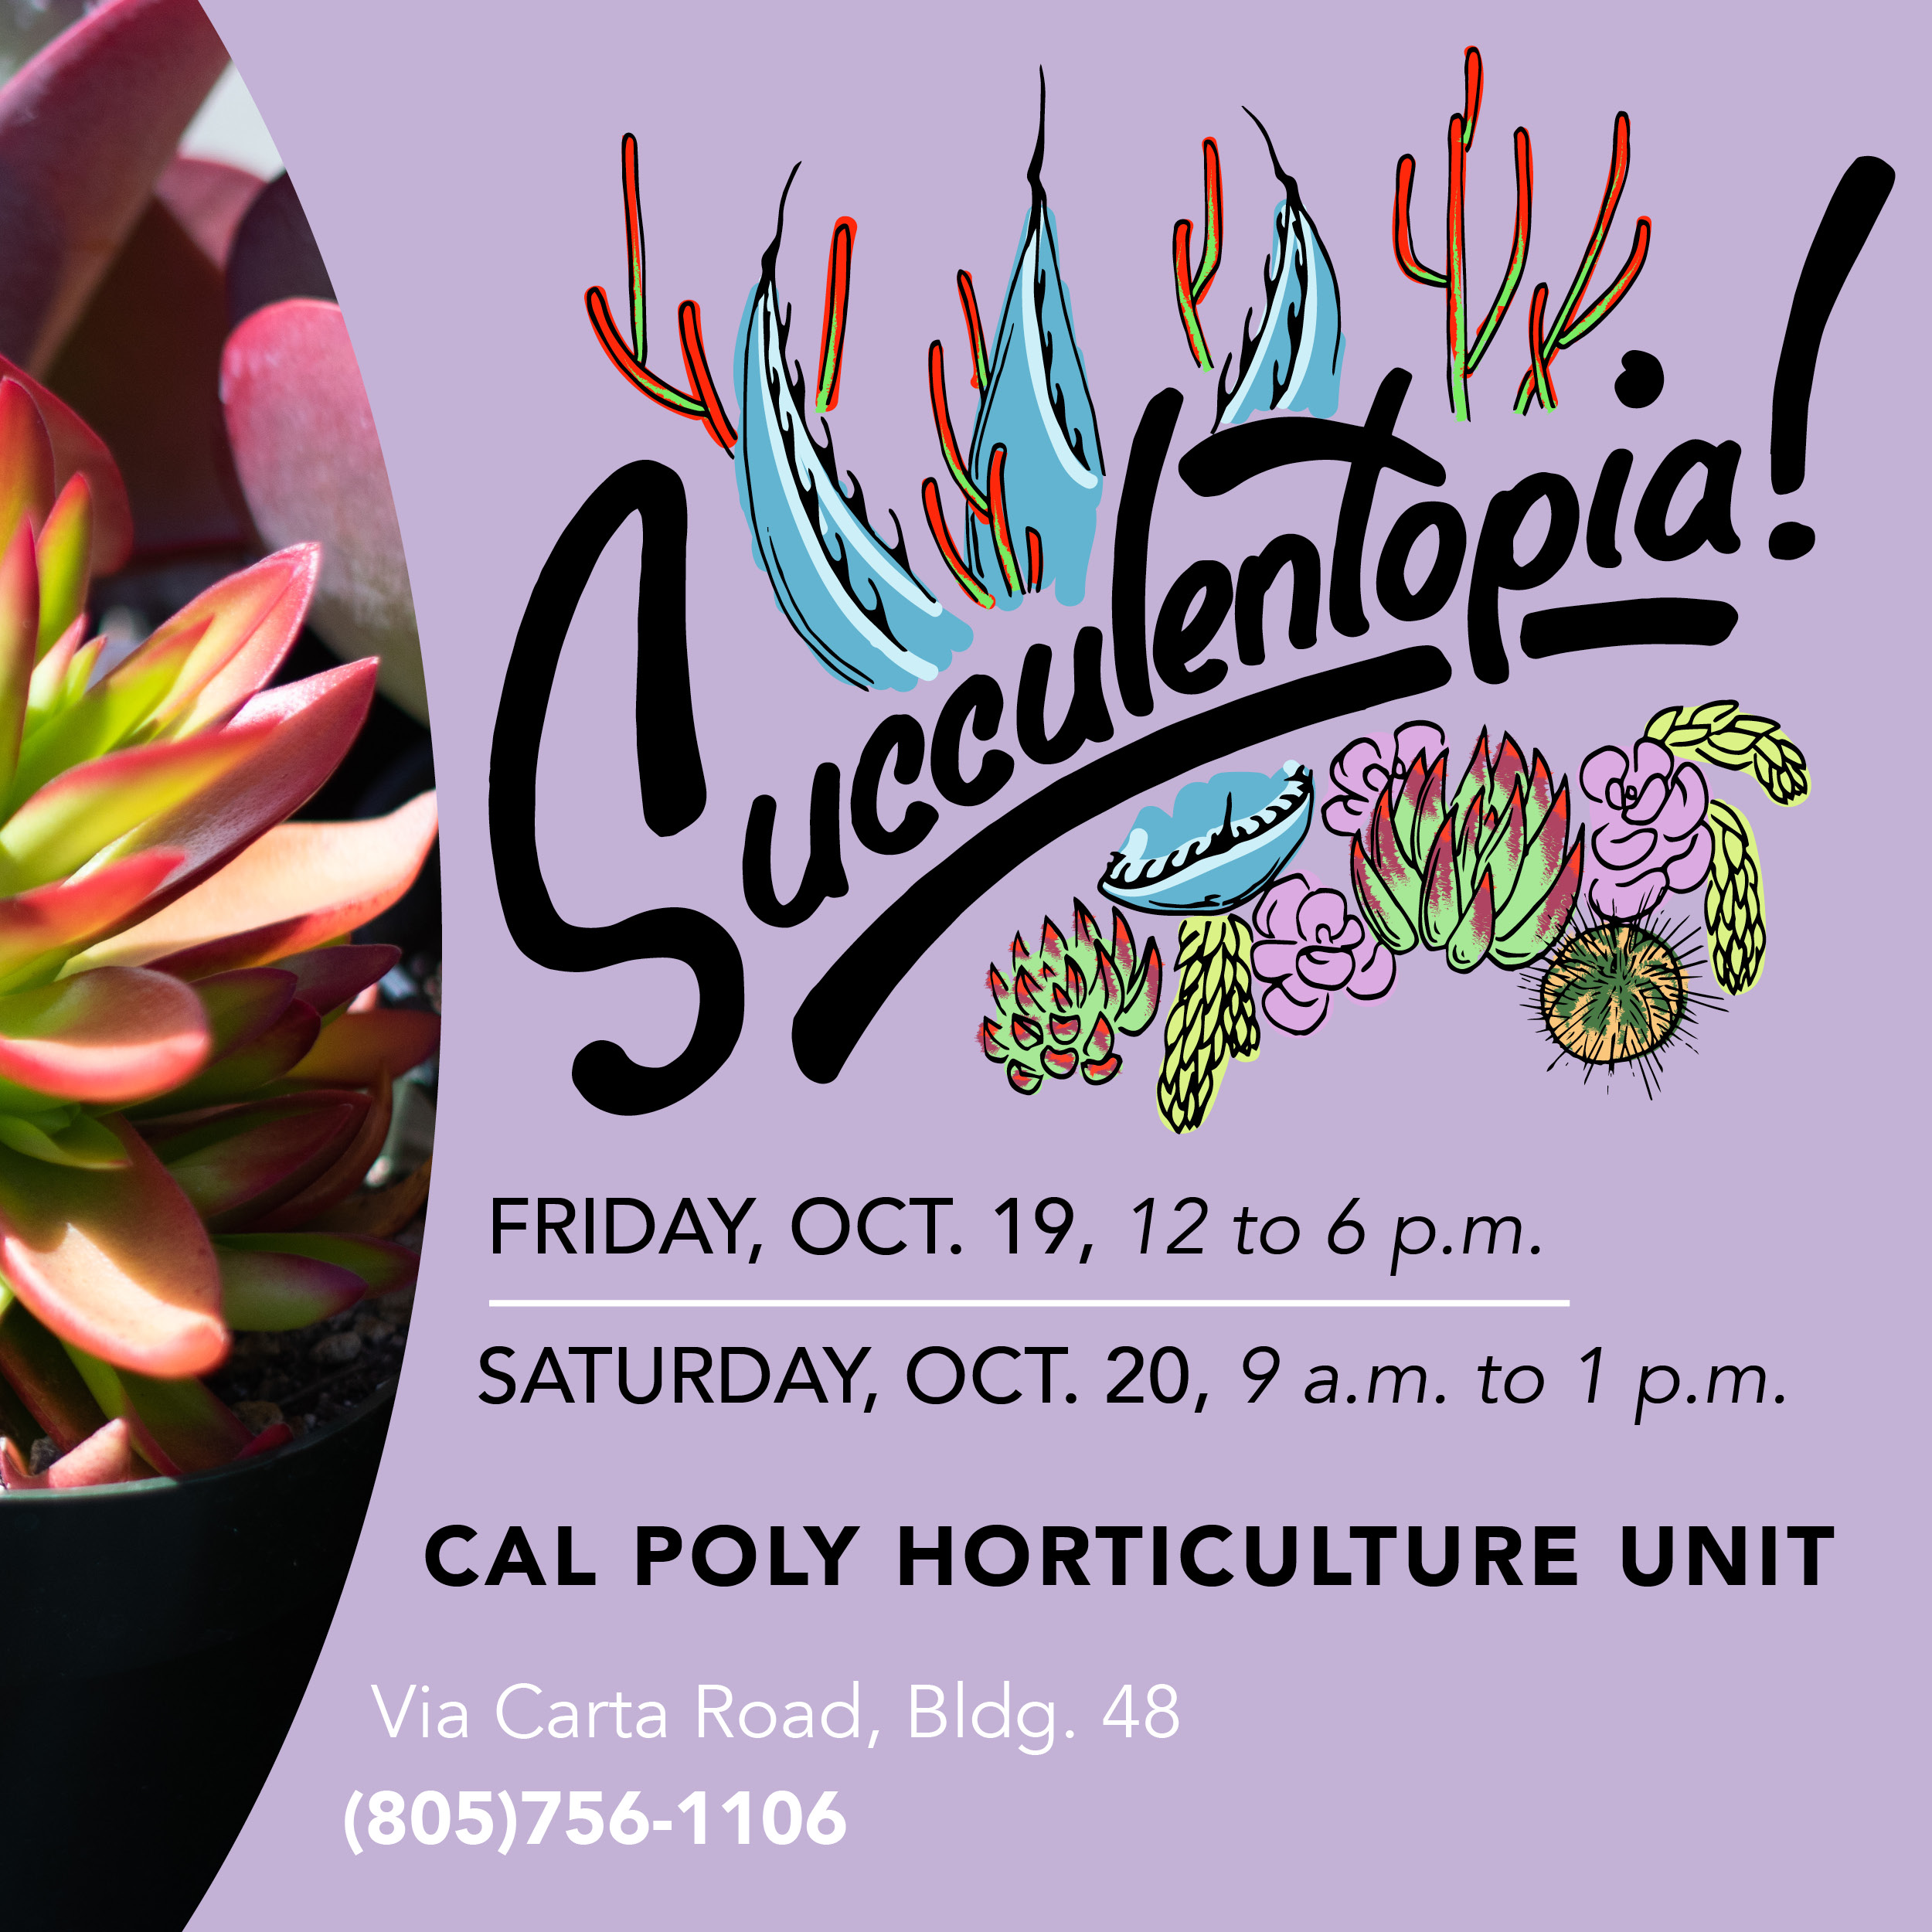 Poster for Succulentopia!